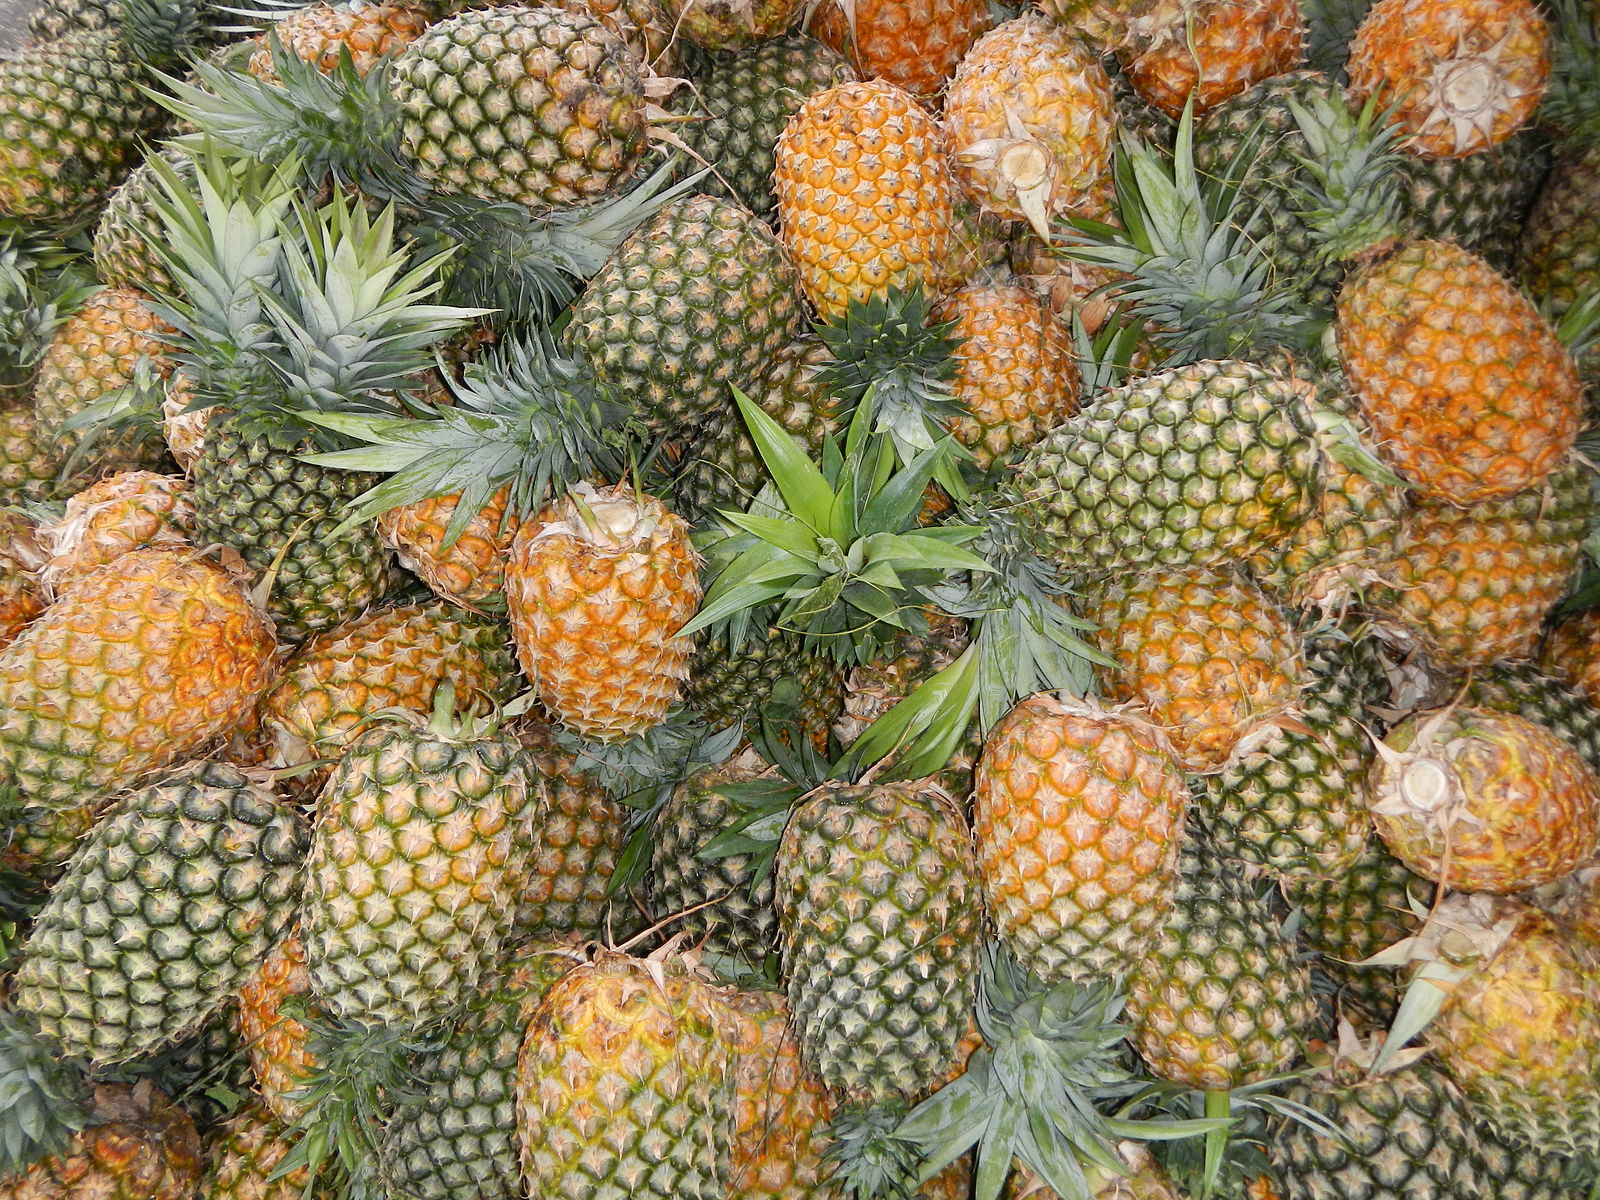 Different Types of Pineapple